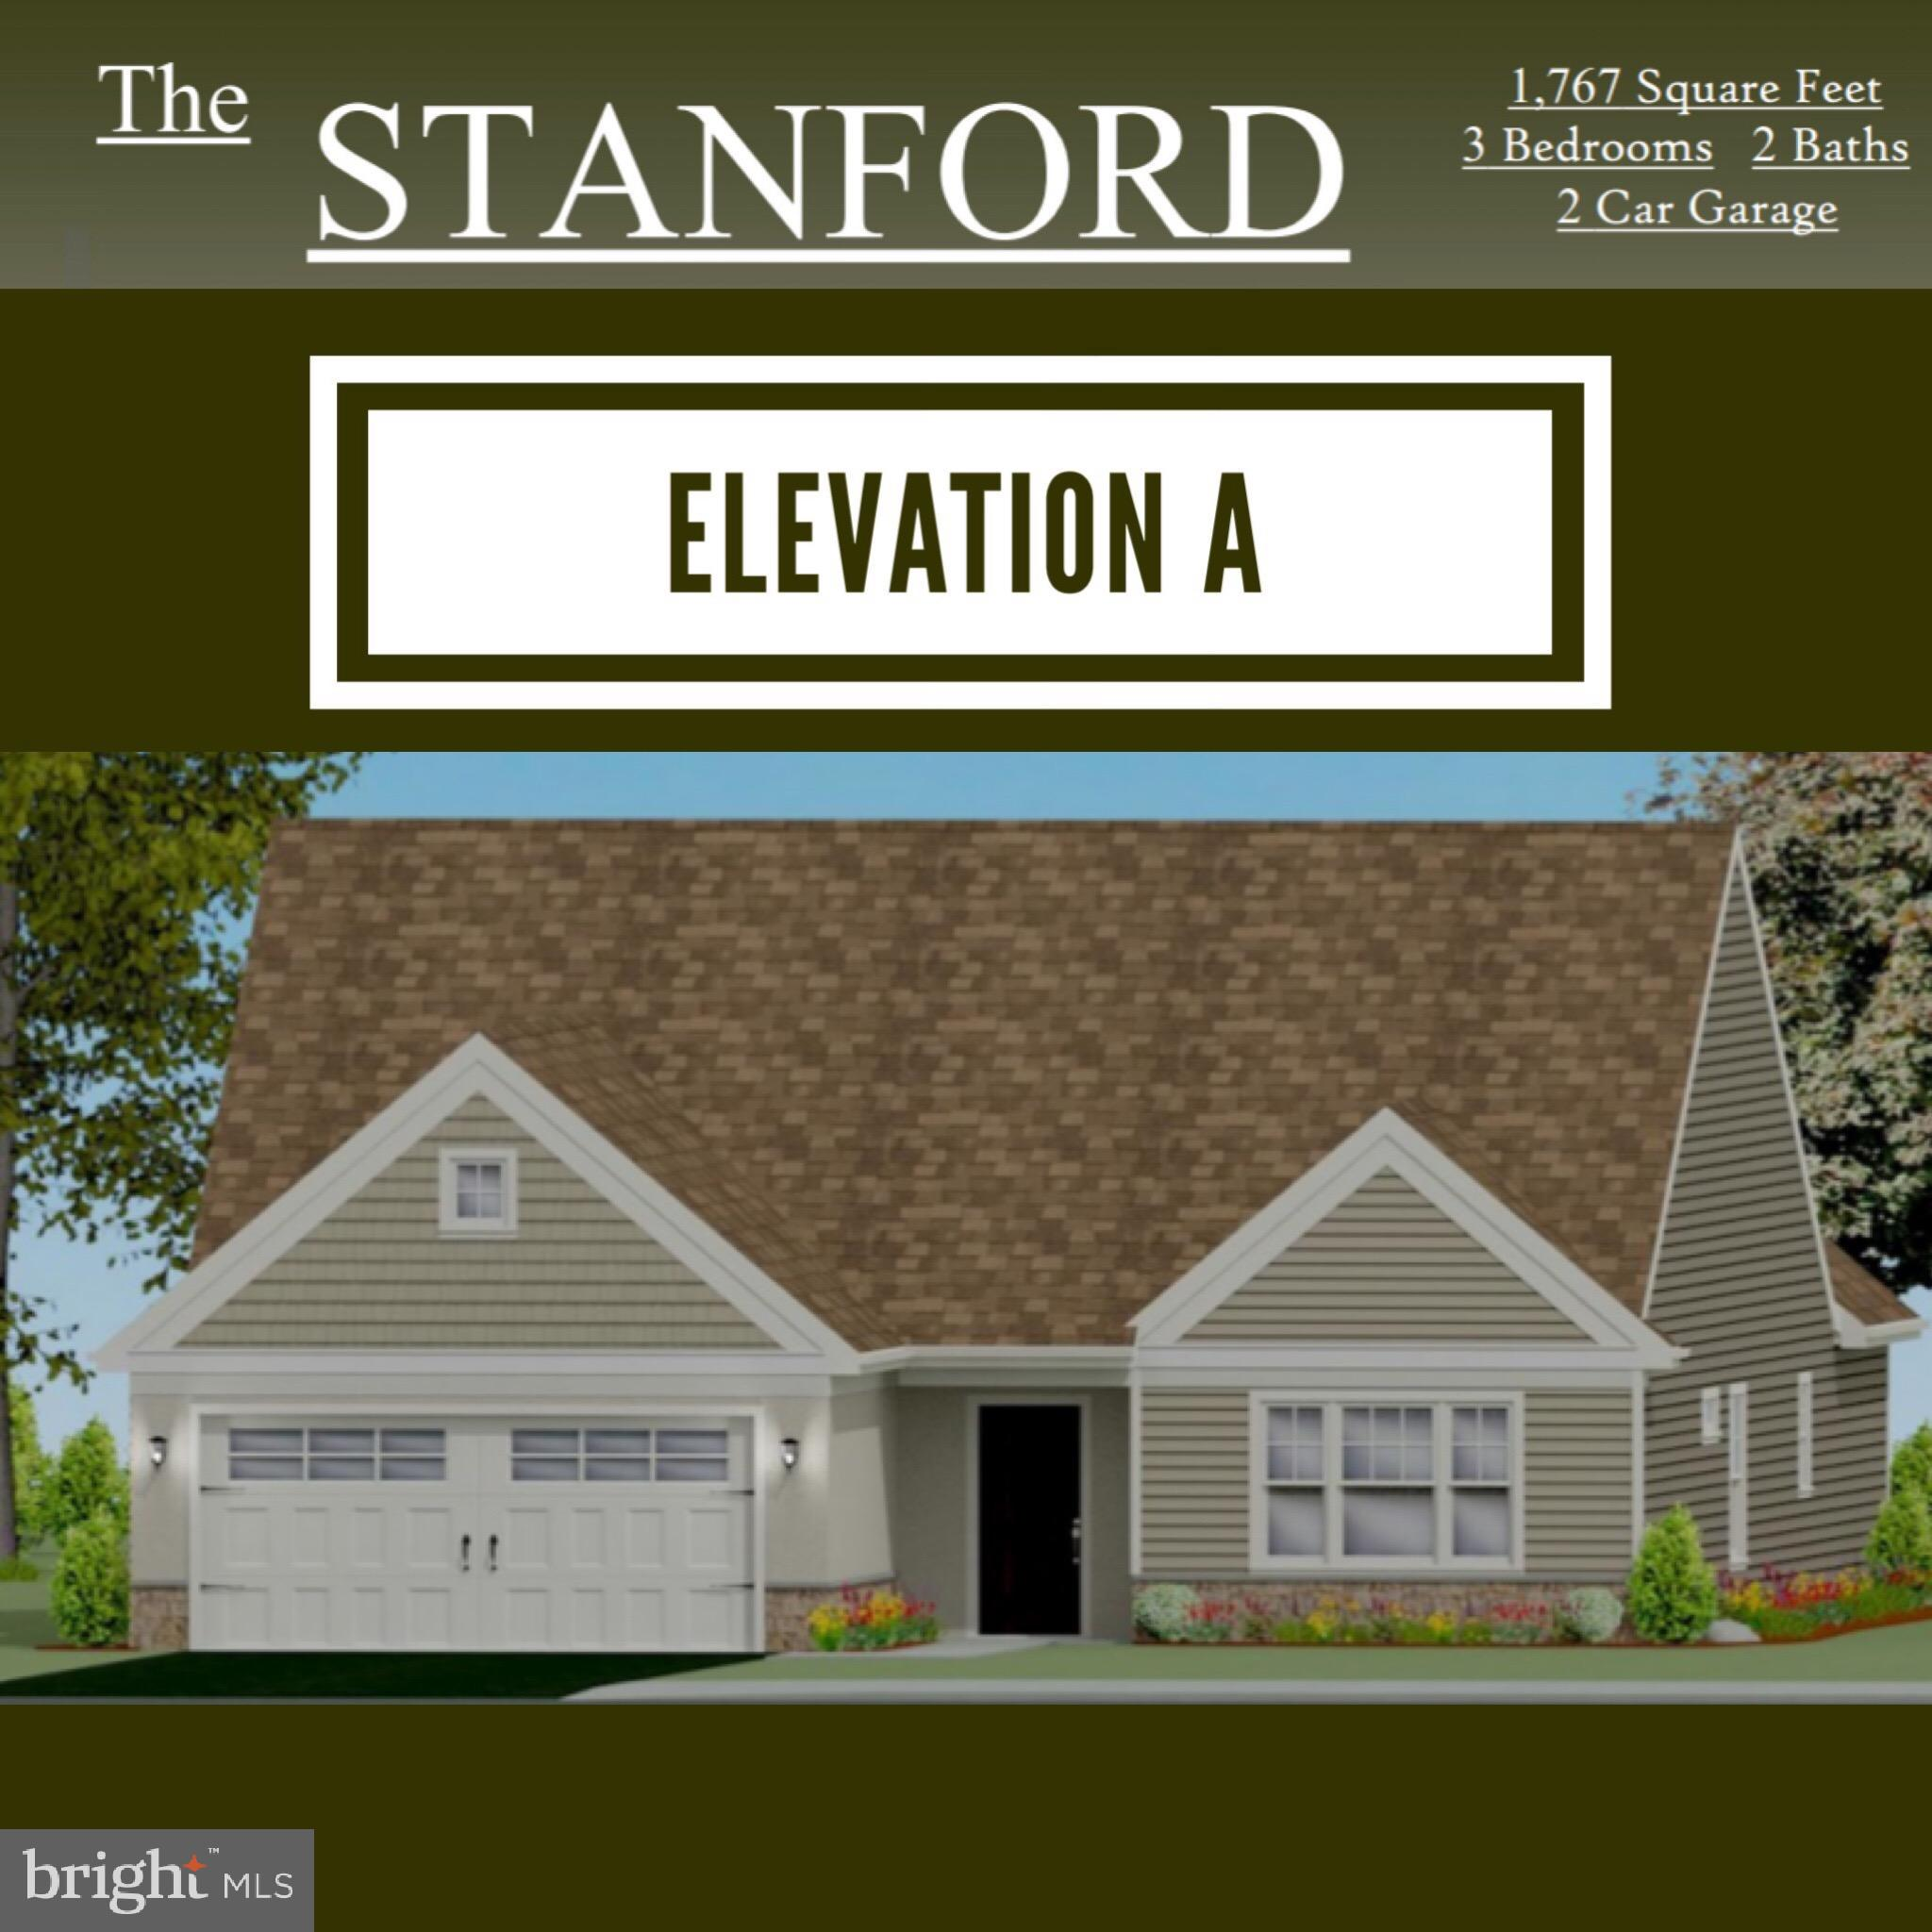 0 THE STANFORD - ALDEN HOMES AT MOUNTAIN MEADOWS, MYERSTOWN, PA 17067